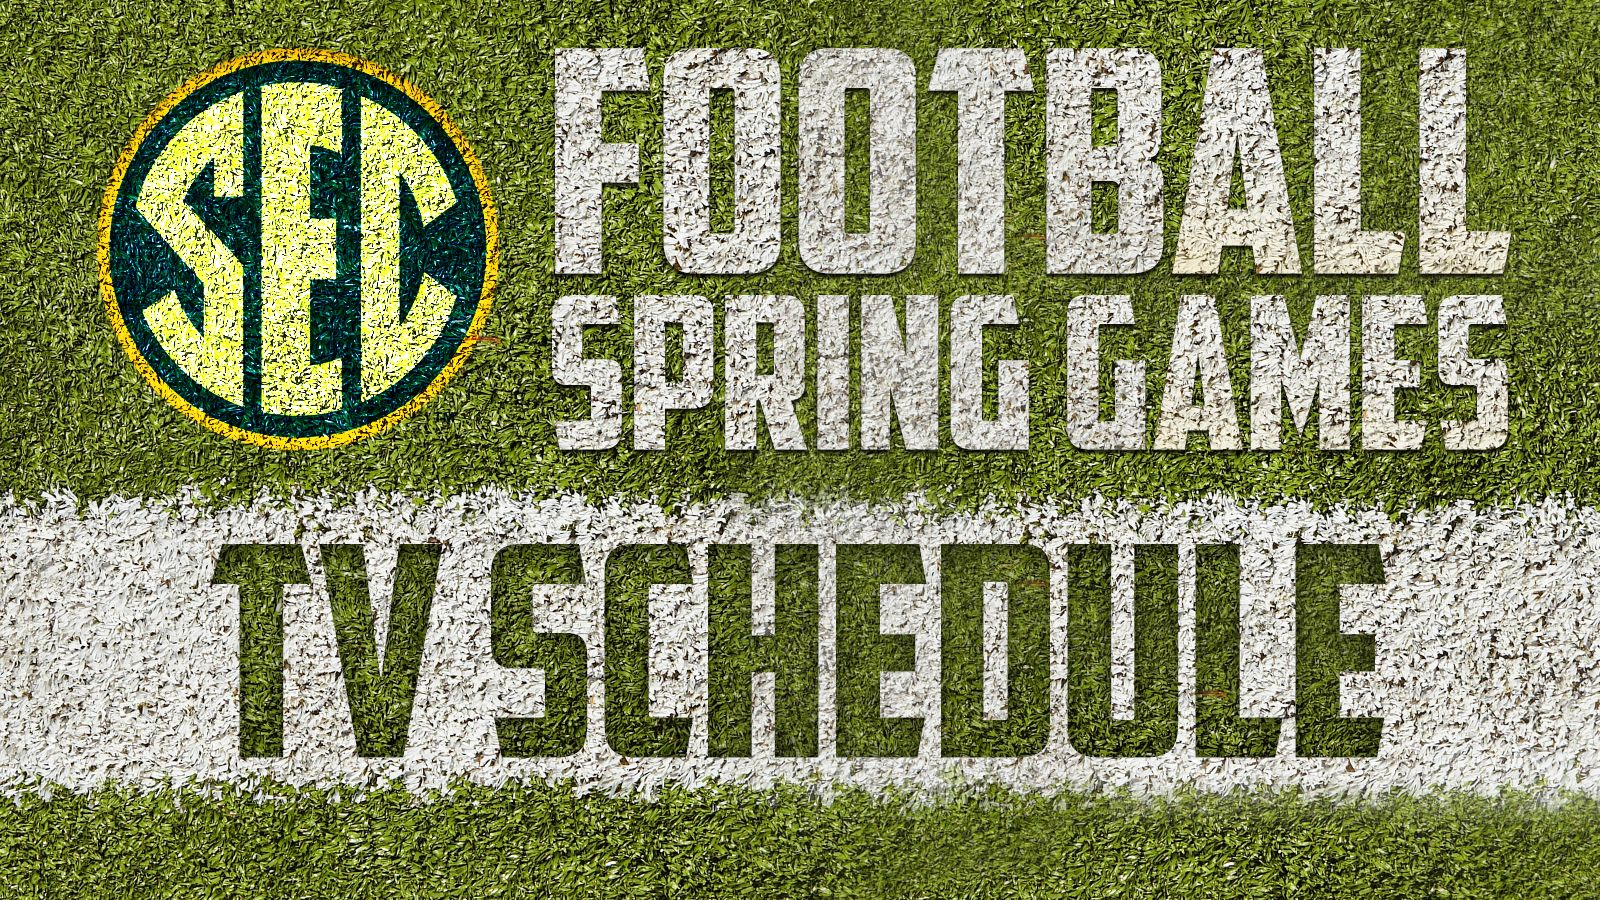 Every 2019 SEC spring football game to be televised